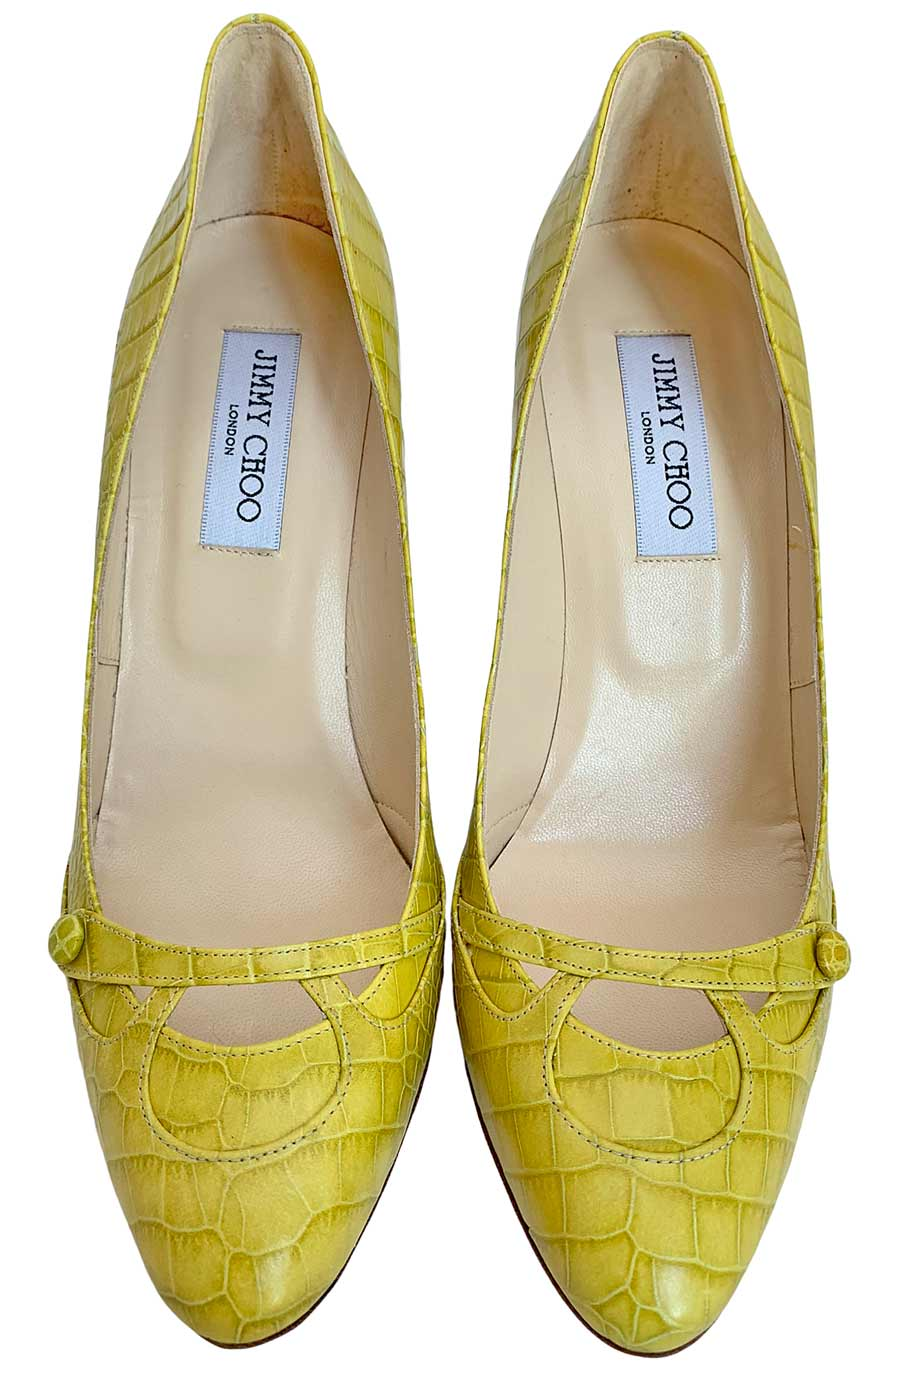 Jimmy Choo Yellow Croc Embossed Cody Cap Toe High Heel Pumps / Sz 39